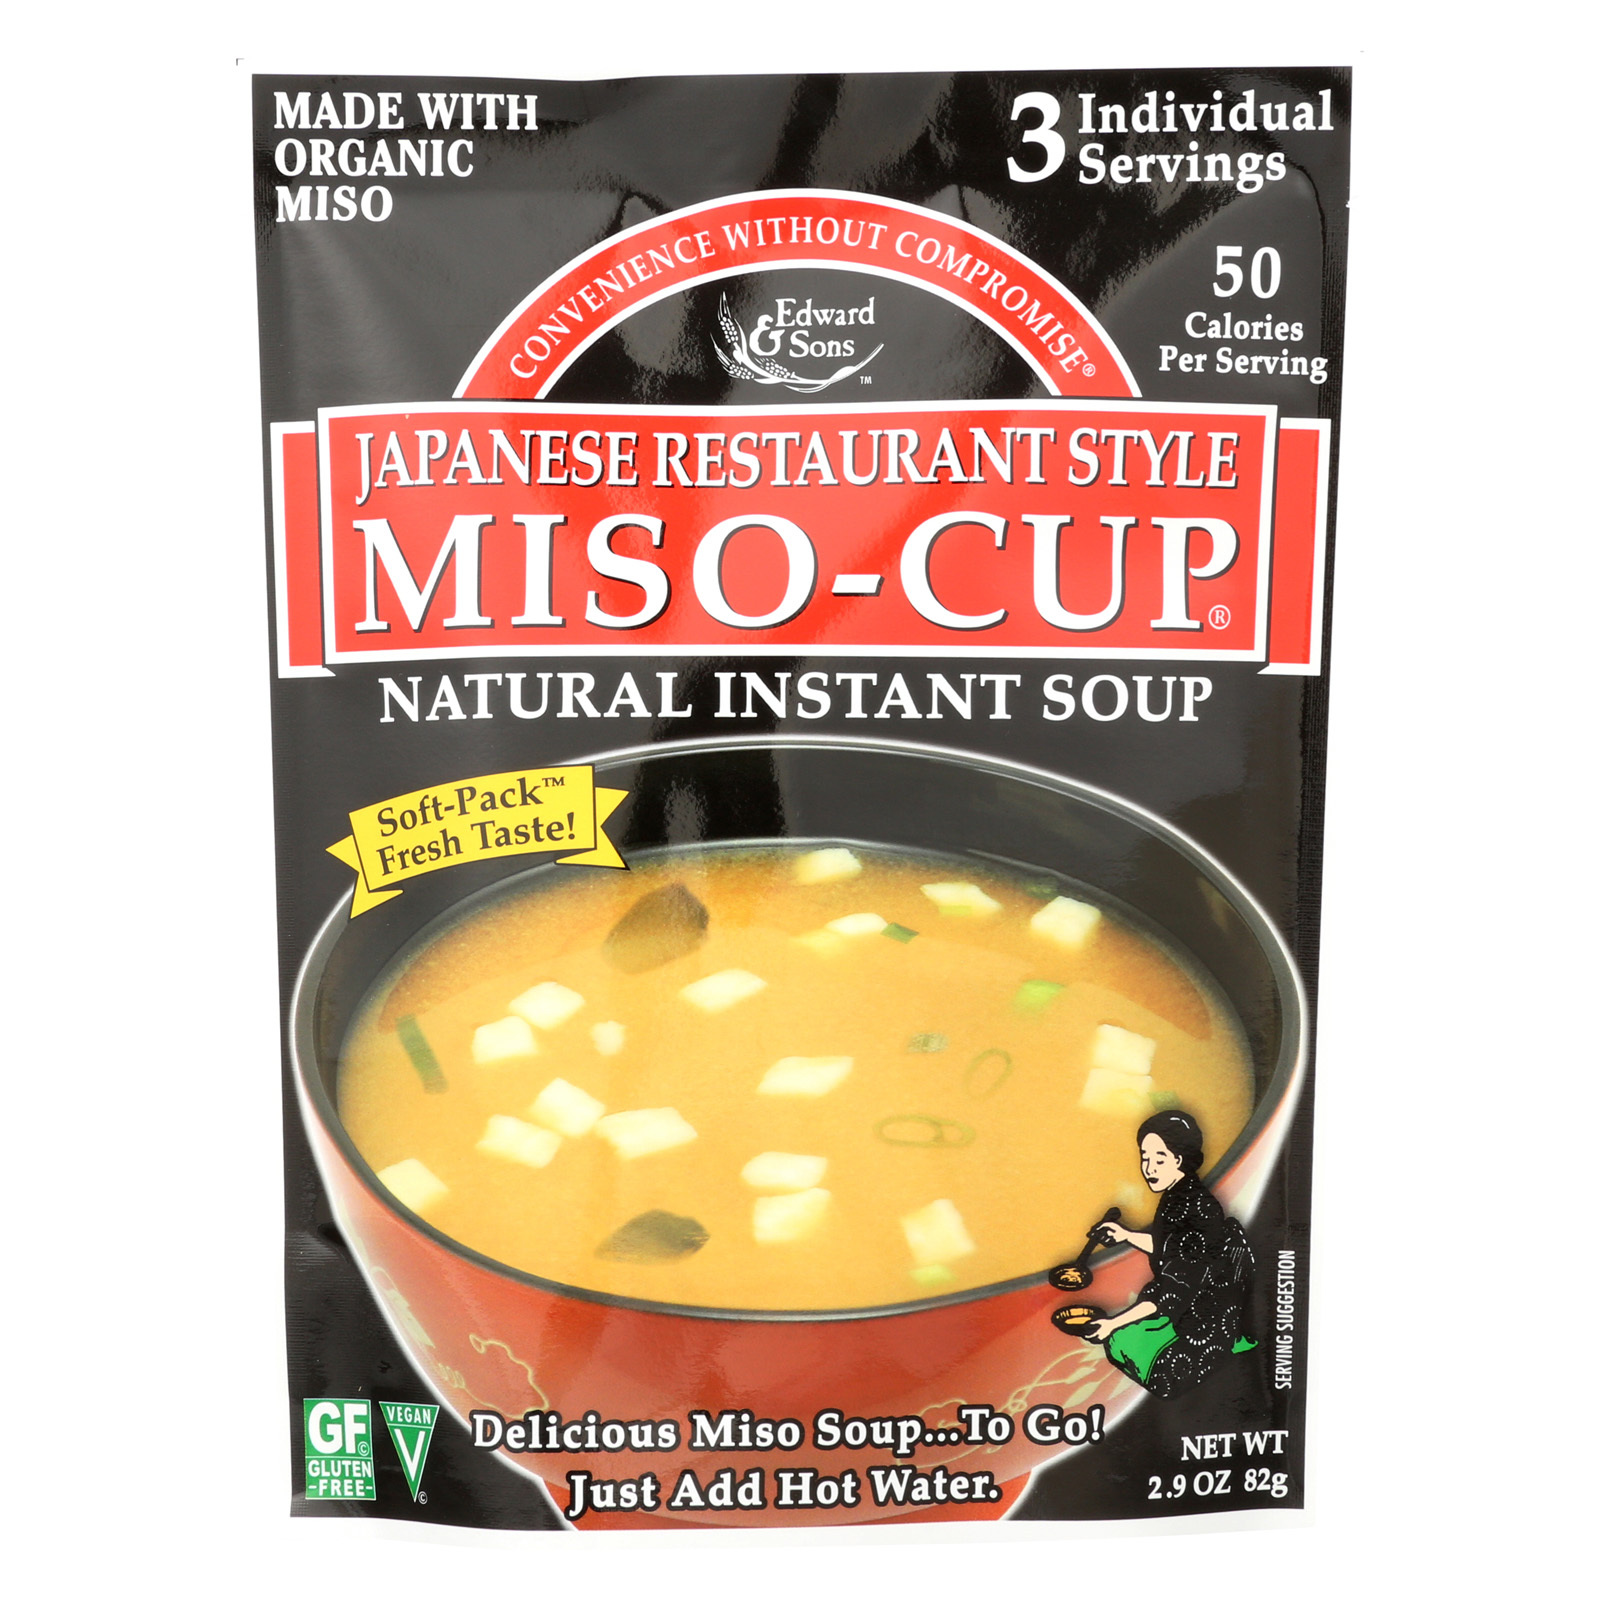 Edward and Sons Miso Cup Soup - Japanese Restaurant Style - Case of 6 - 2.9 oz.